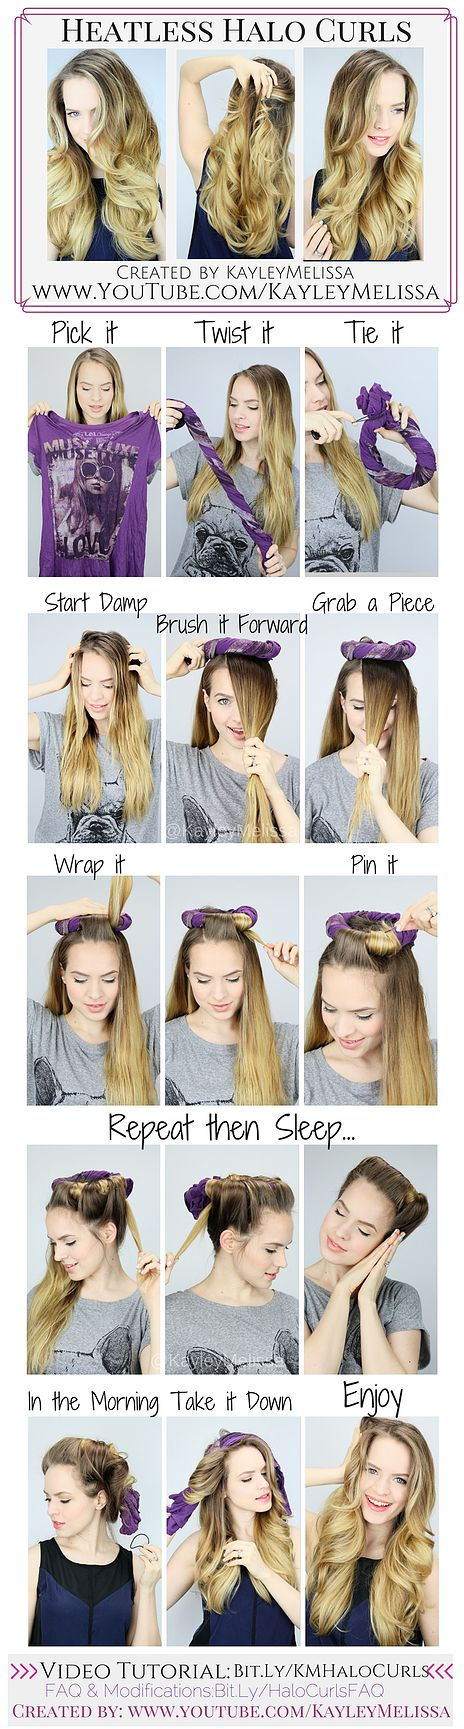 Easy Heatless Curls / Waves! These are so smooth and soft! + They look like they were done with a curling iron! Created by KayleyMelissa (youtube.com/KayleyMelissa): Diy Curly Hairstyles, Tshirt Curl, Curling Iron Hairstyles, Curled Hair Hairstyles, Heatl